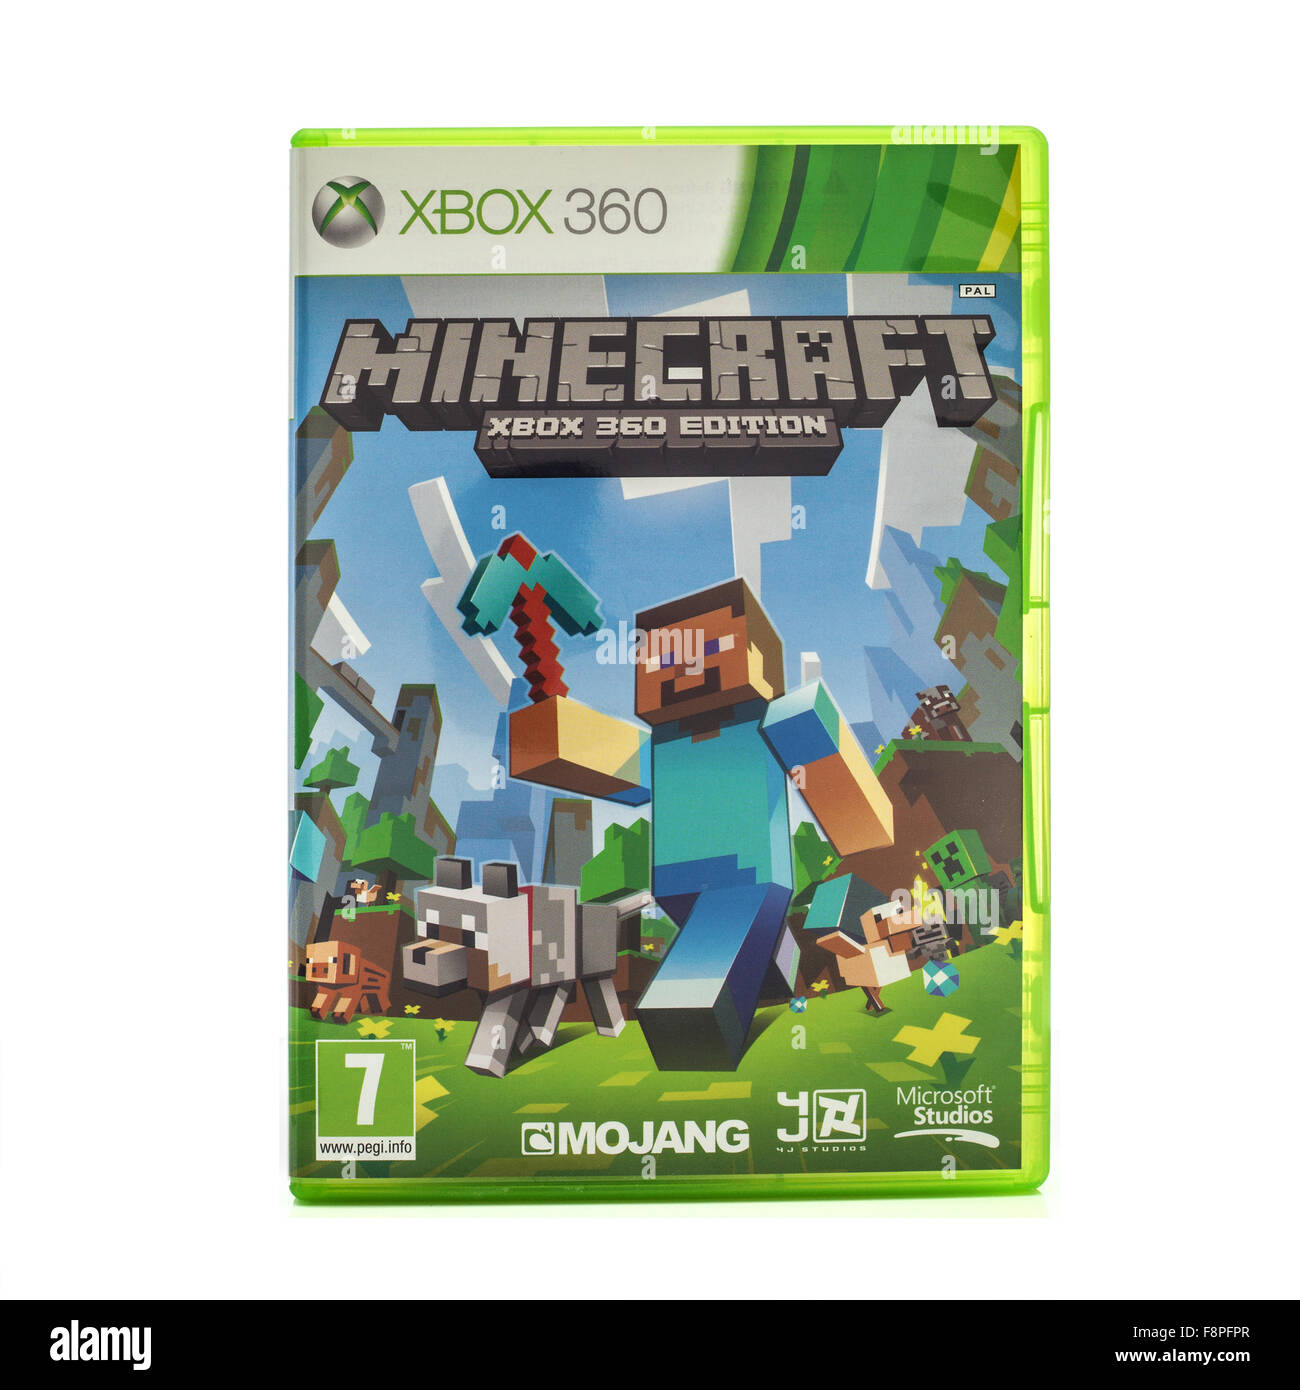 Minecraft game for the Xbox Console on a White Background - Stock Image